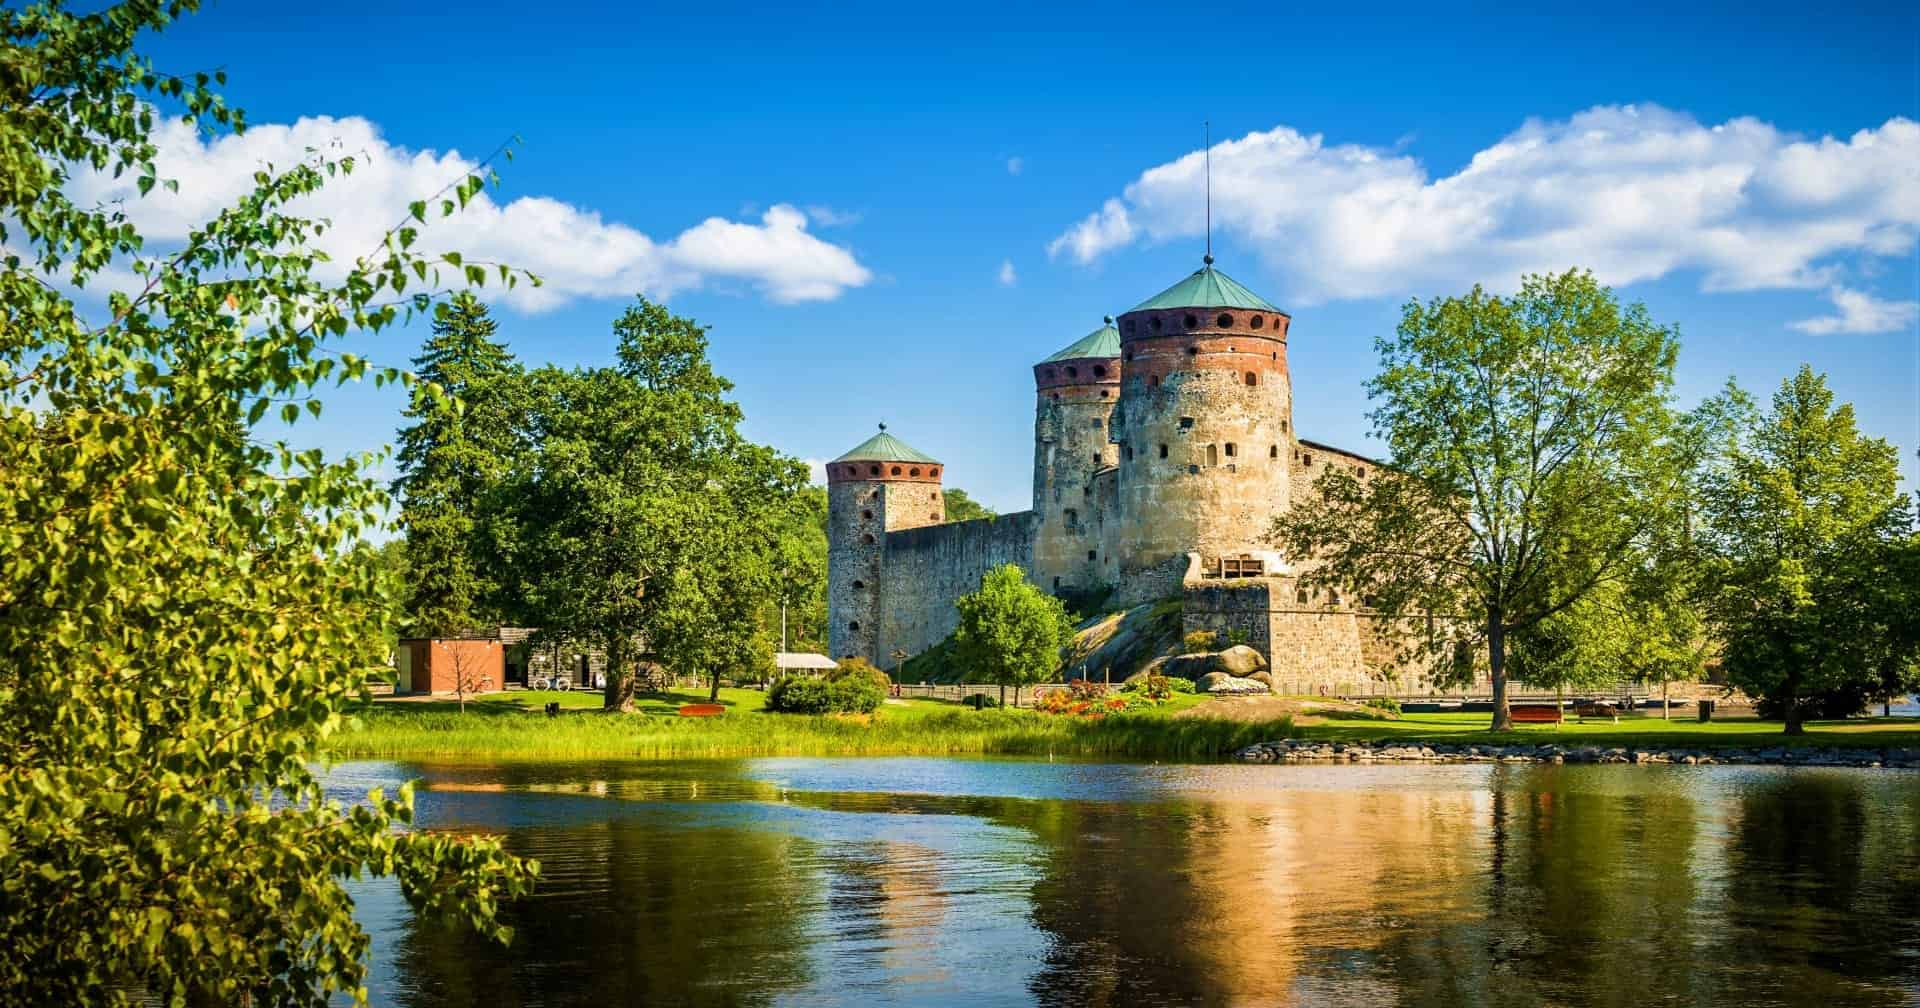 Olavinlinna fortress in Savonlinna center Finland